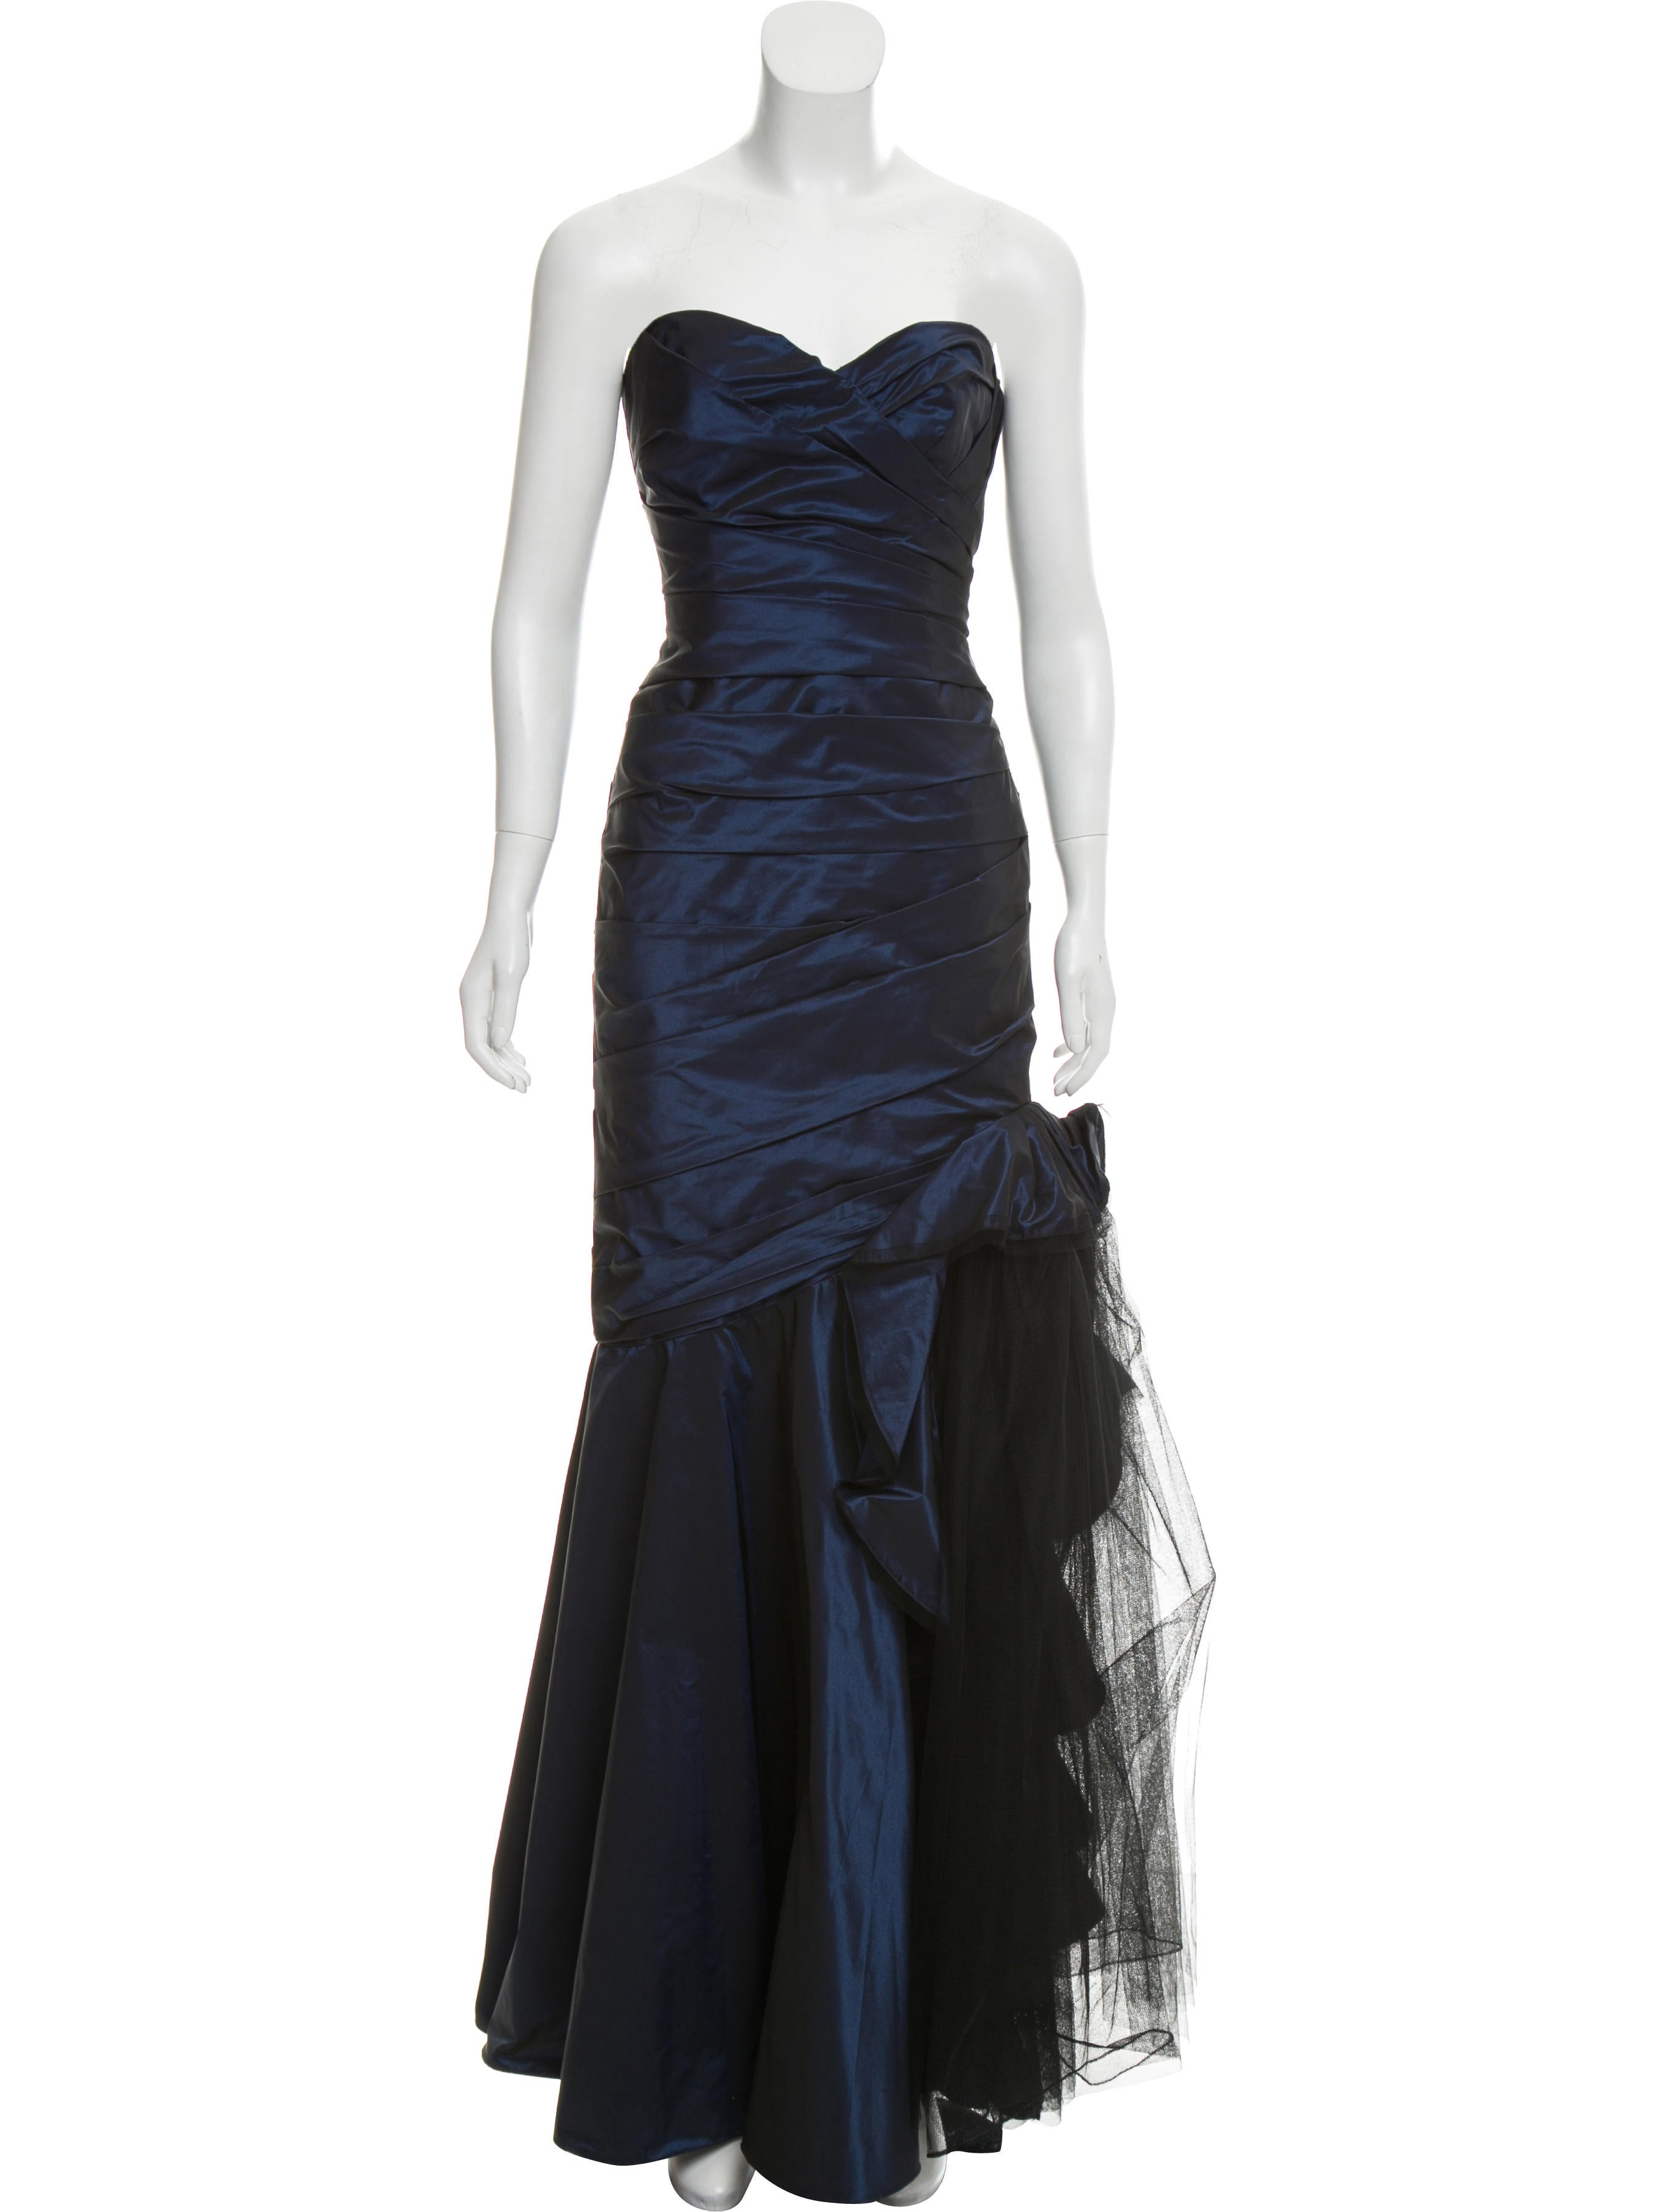 ML Monique Lhuillier Ruched Strapless Evening Gown - Clothing ...